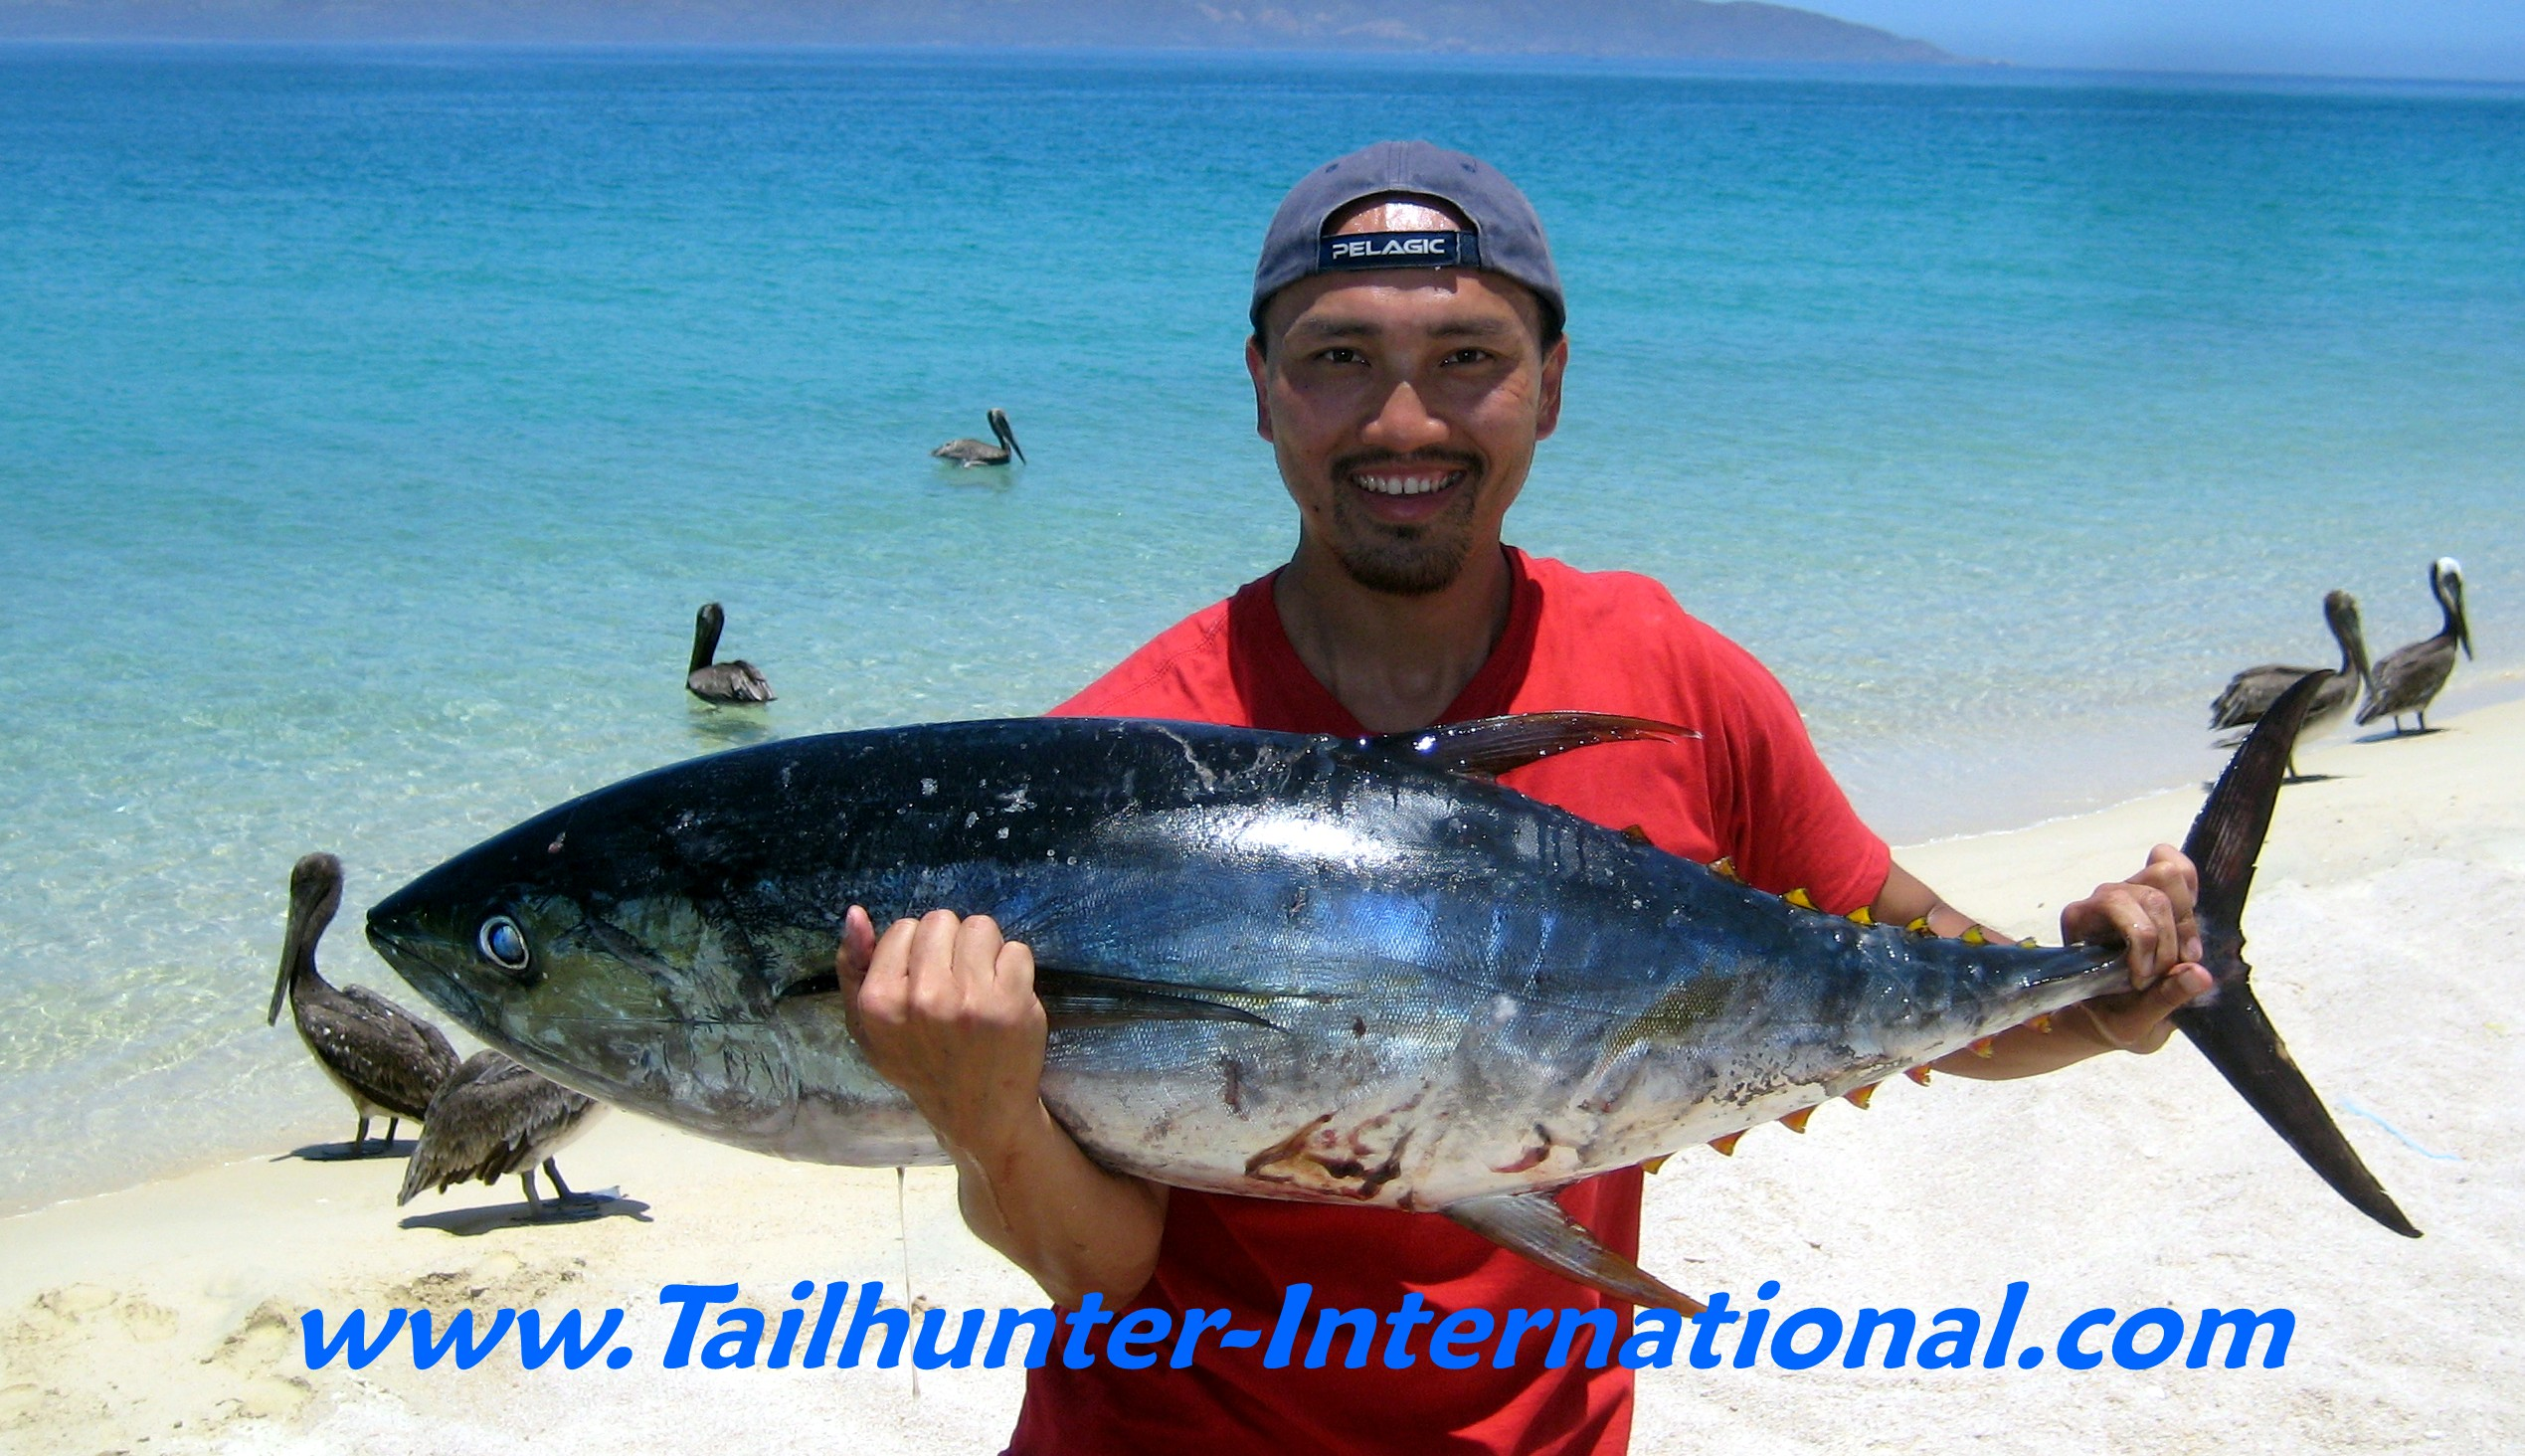 La paz las arenas fishing report for week of july 11 18 for Tuna fishing videos